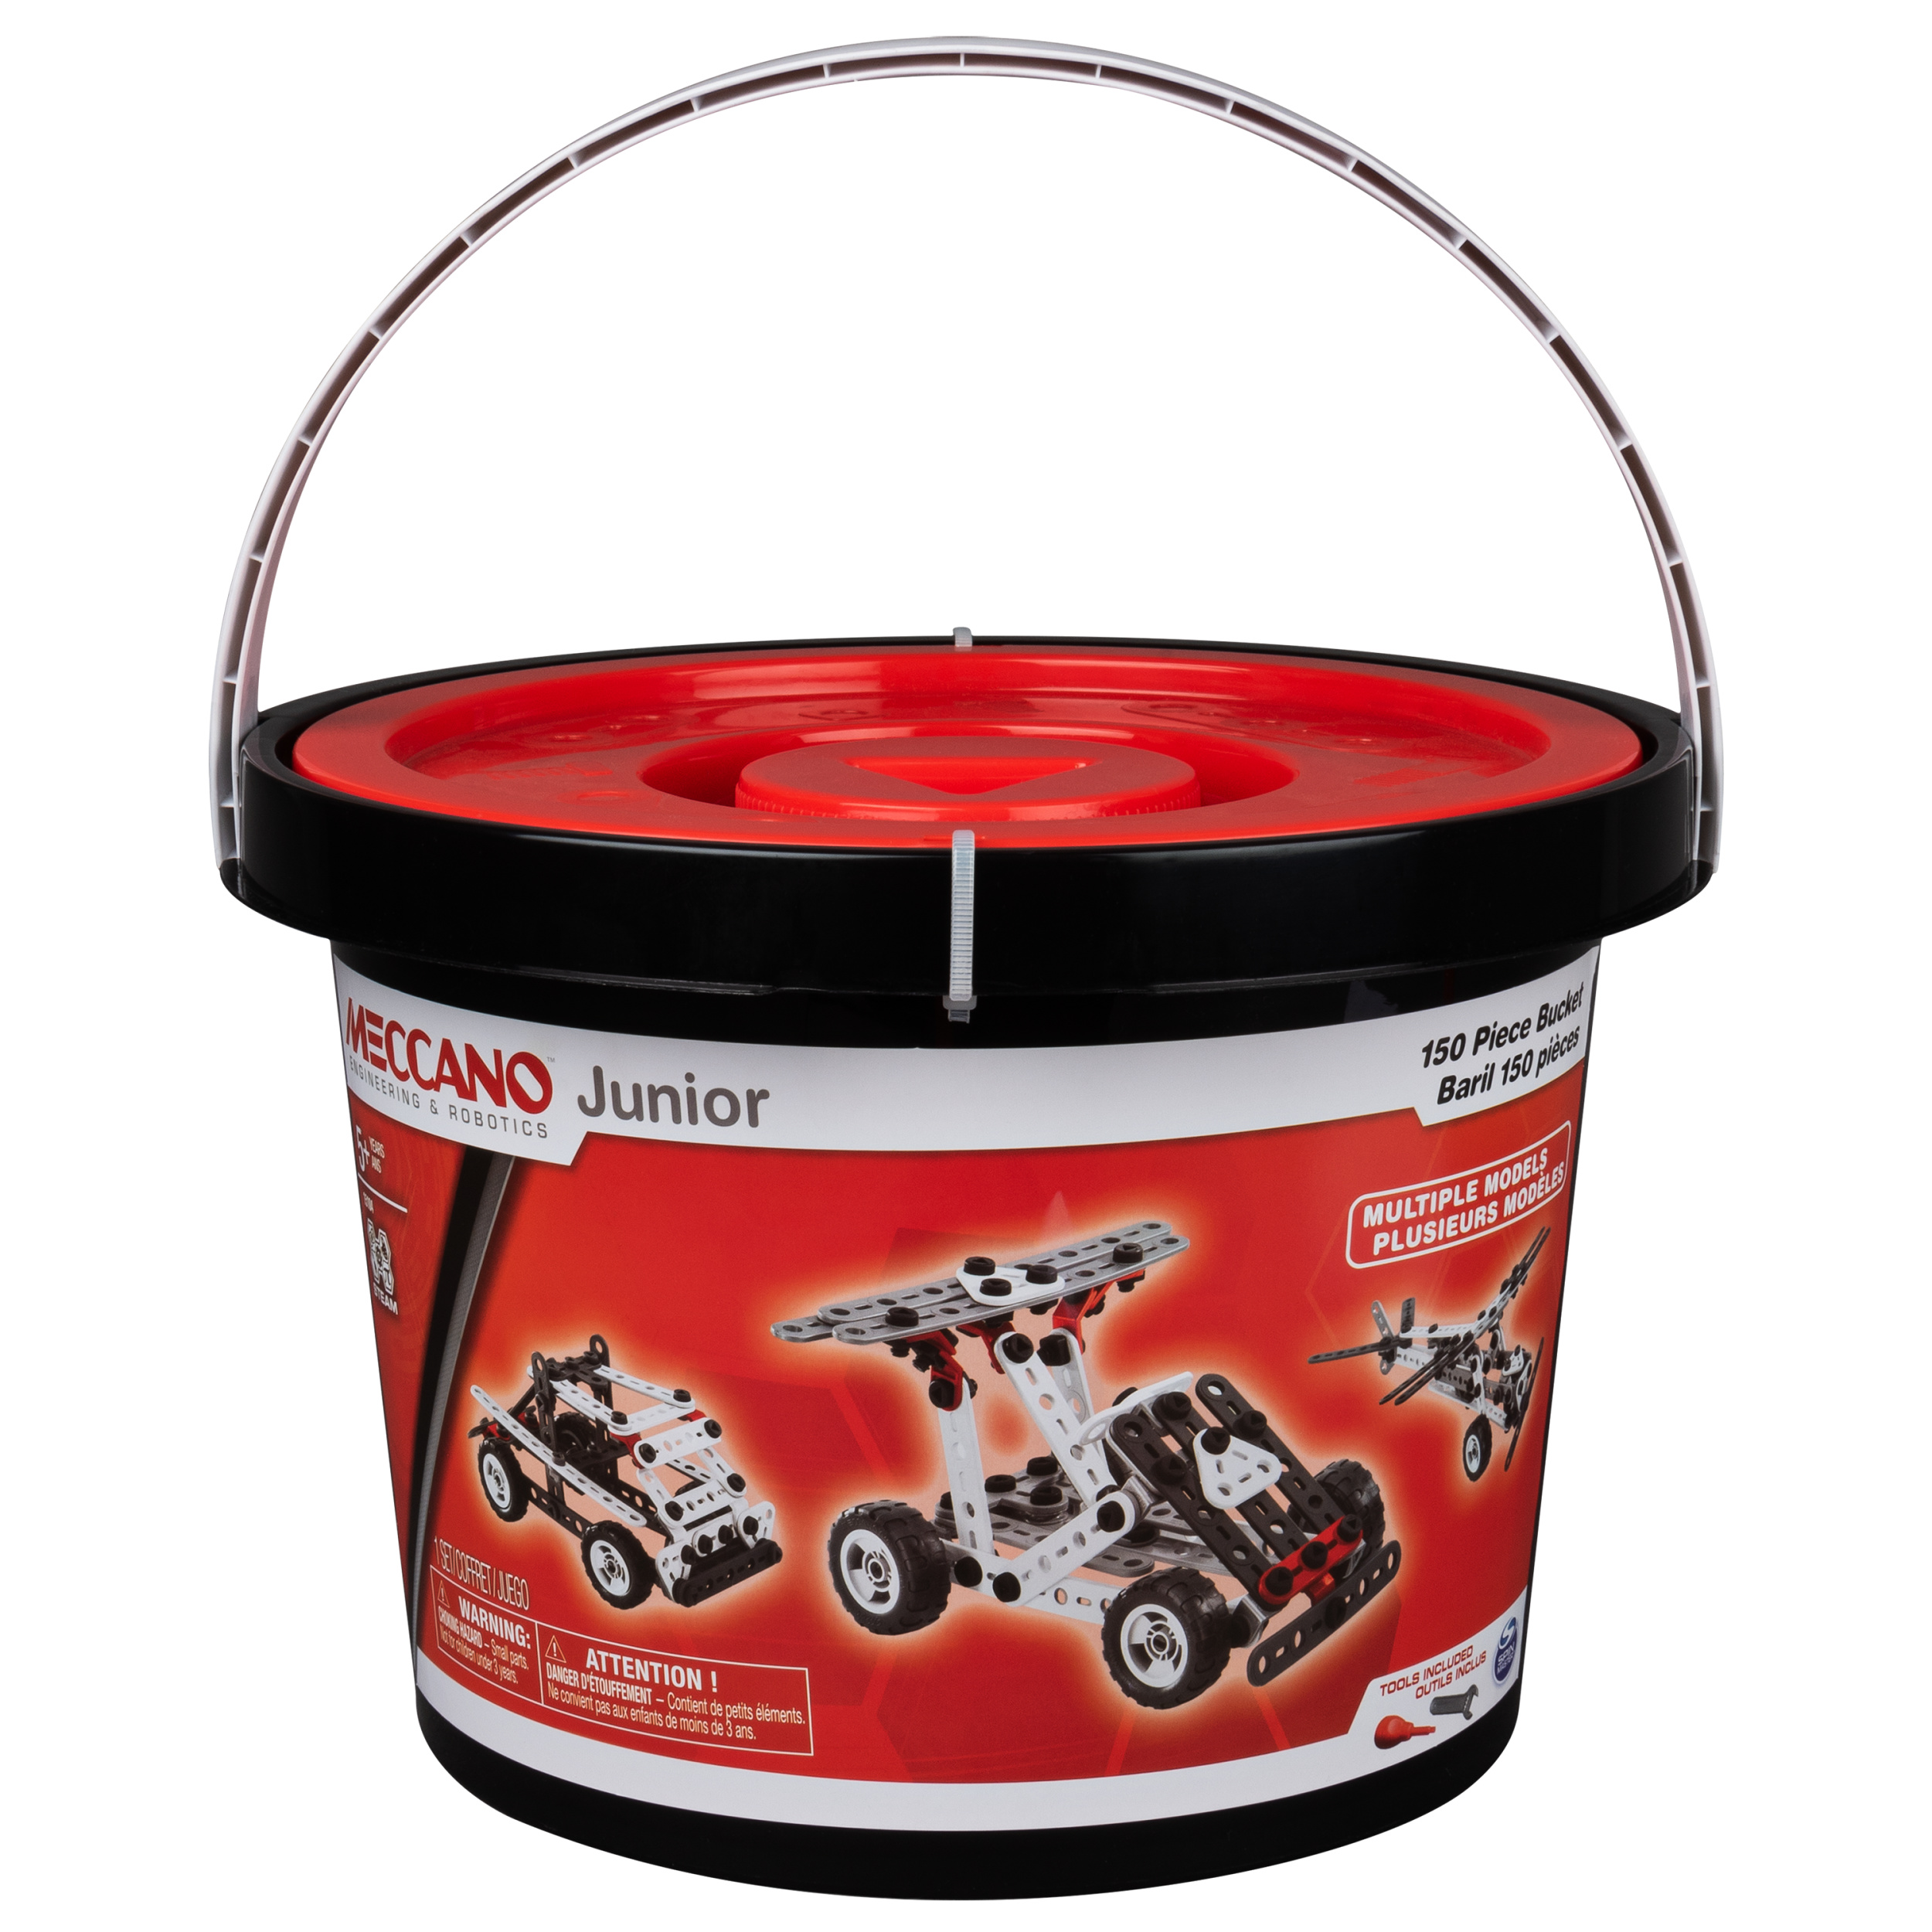 Meccano Junior, 150-Piece Bucket S.T.E.A.M. Building Kit with Real Tools, for Ages 5 and Up